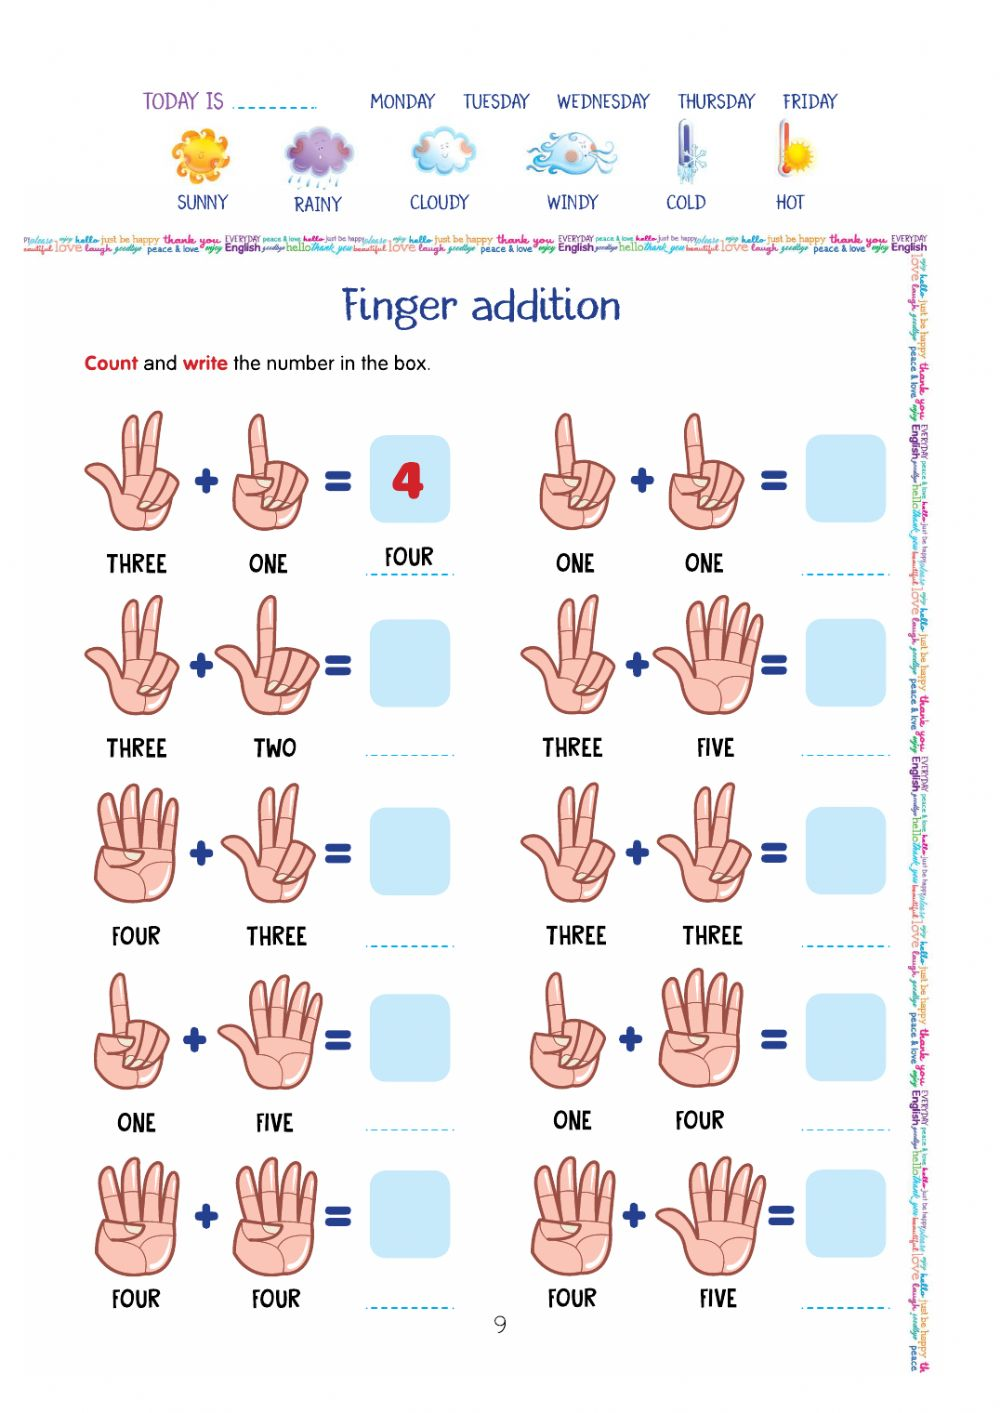 hight resolution of Finger addition worksheet